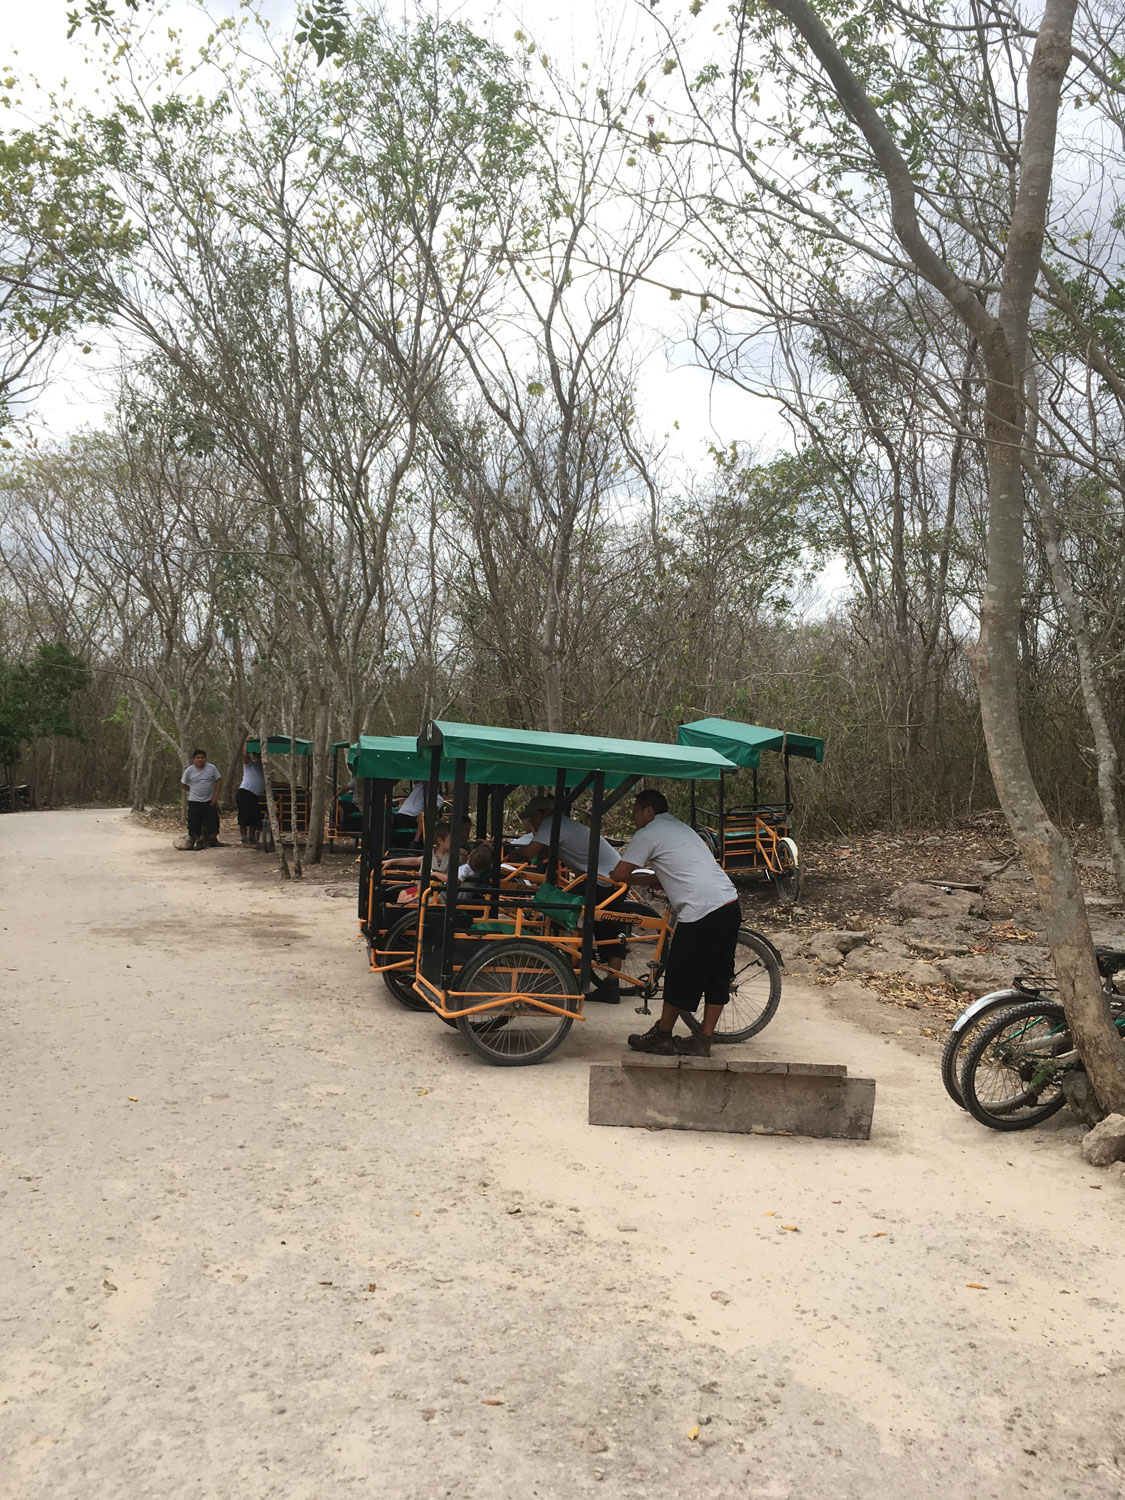 The bici-taxi to the cenote, within the ruin site.